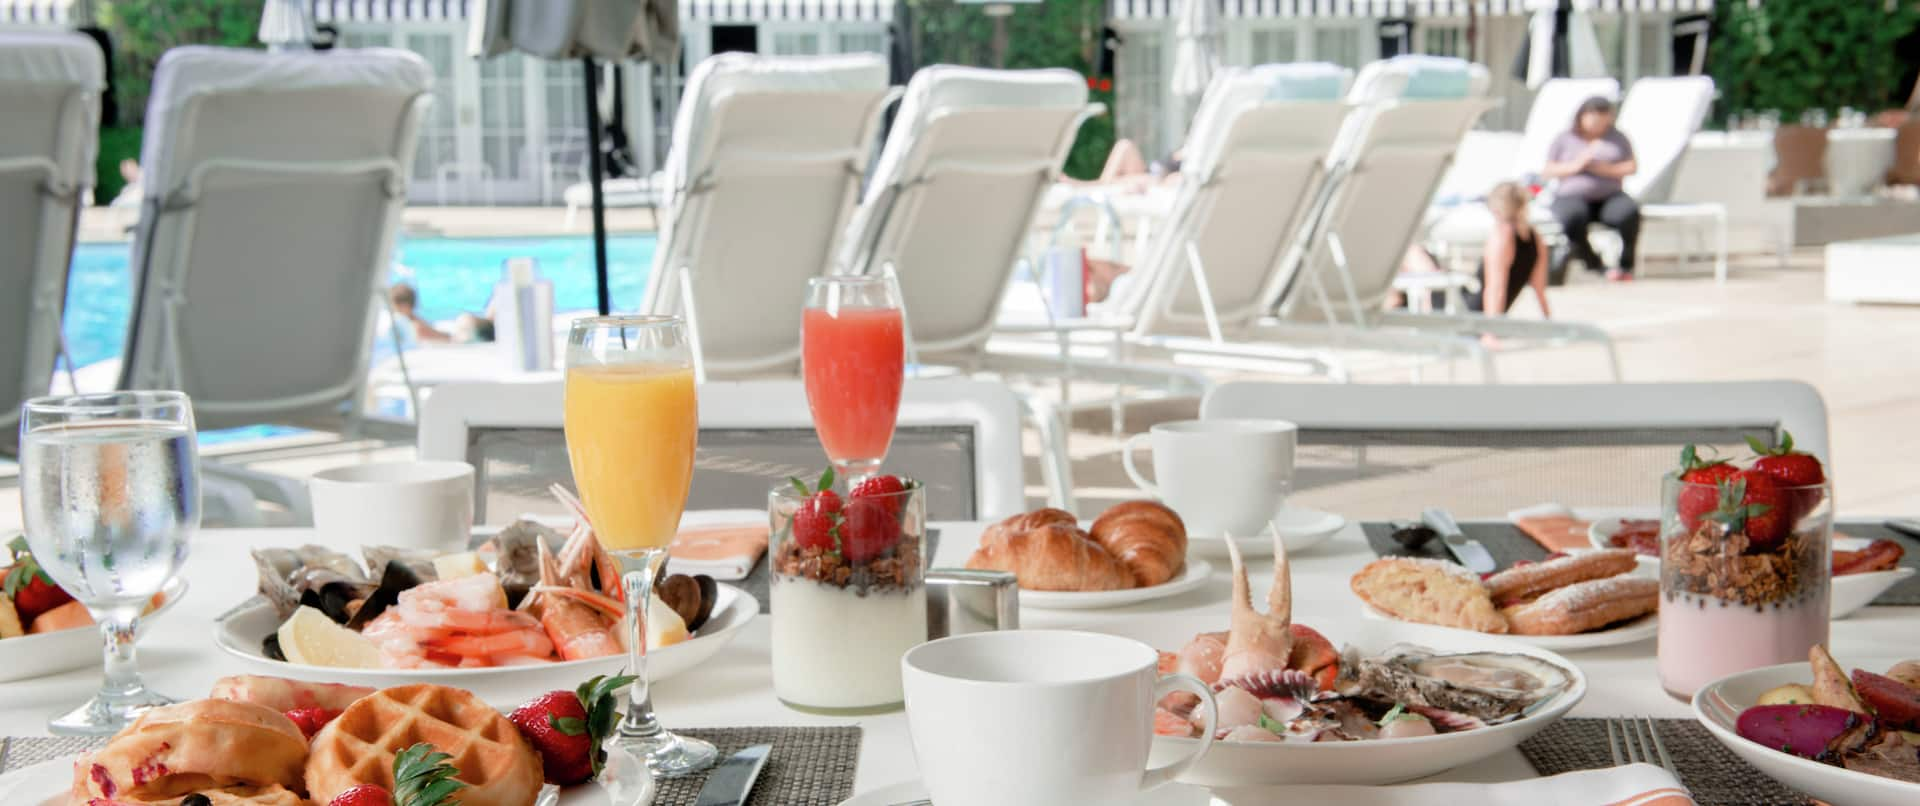 Full breakfast by pool area